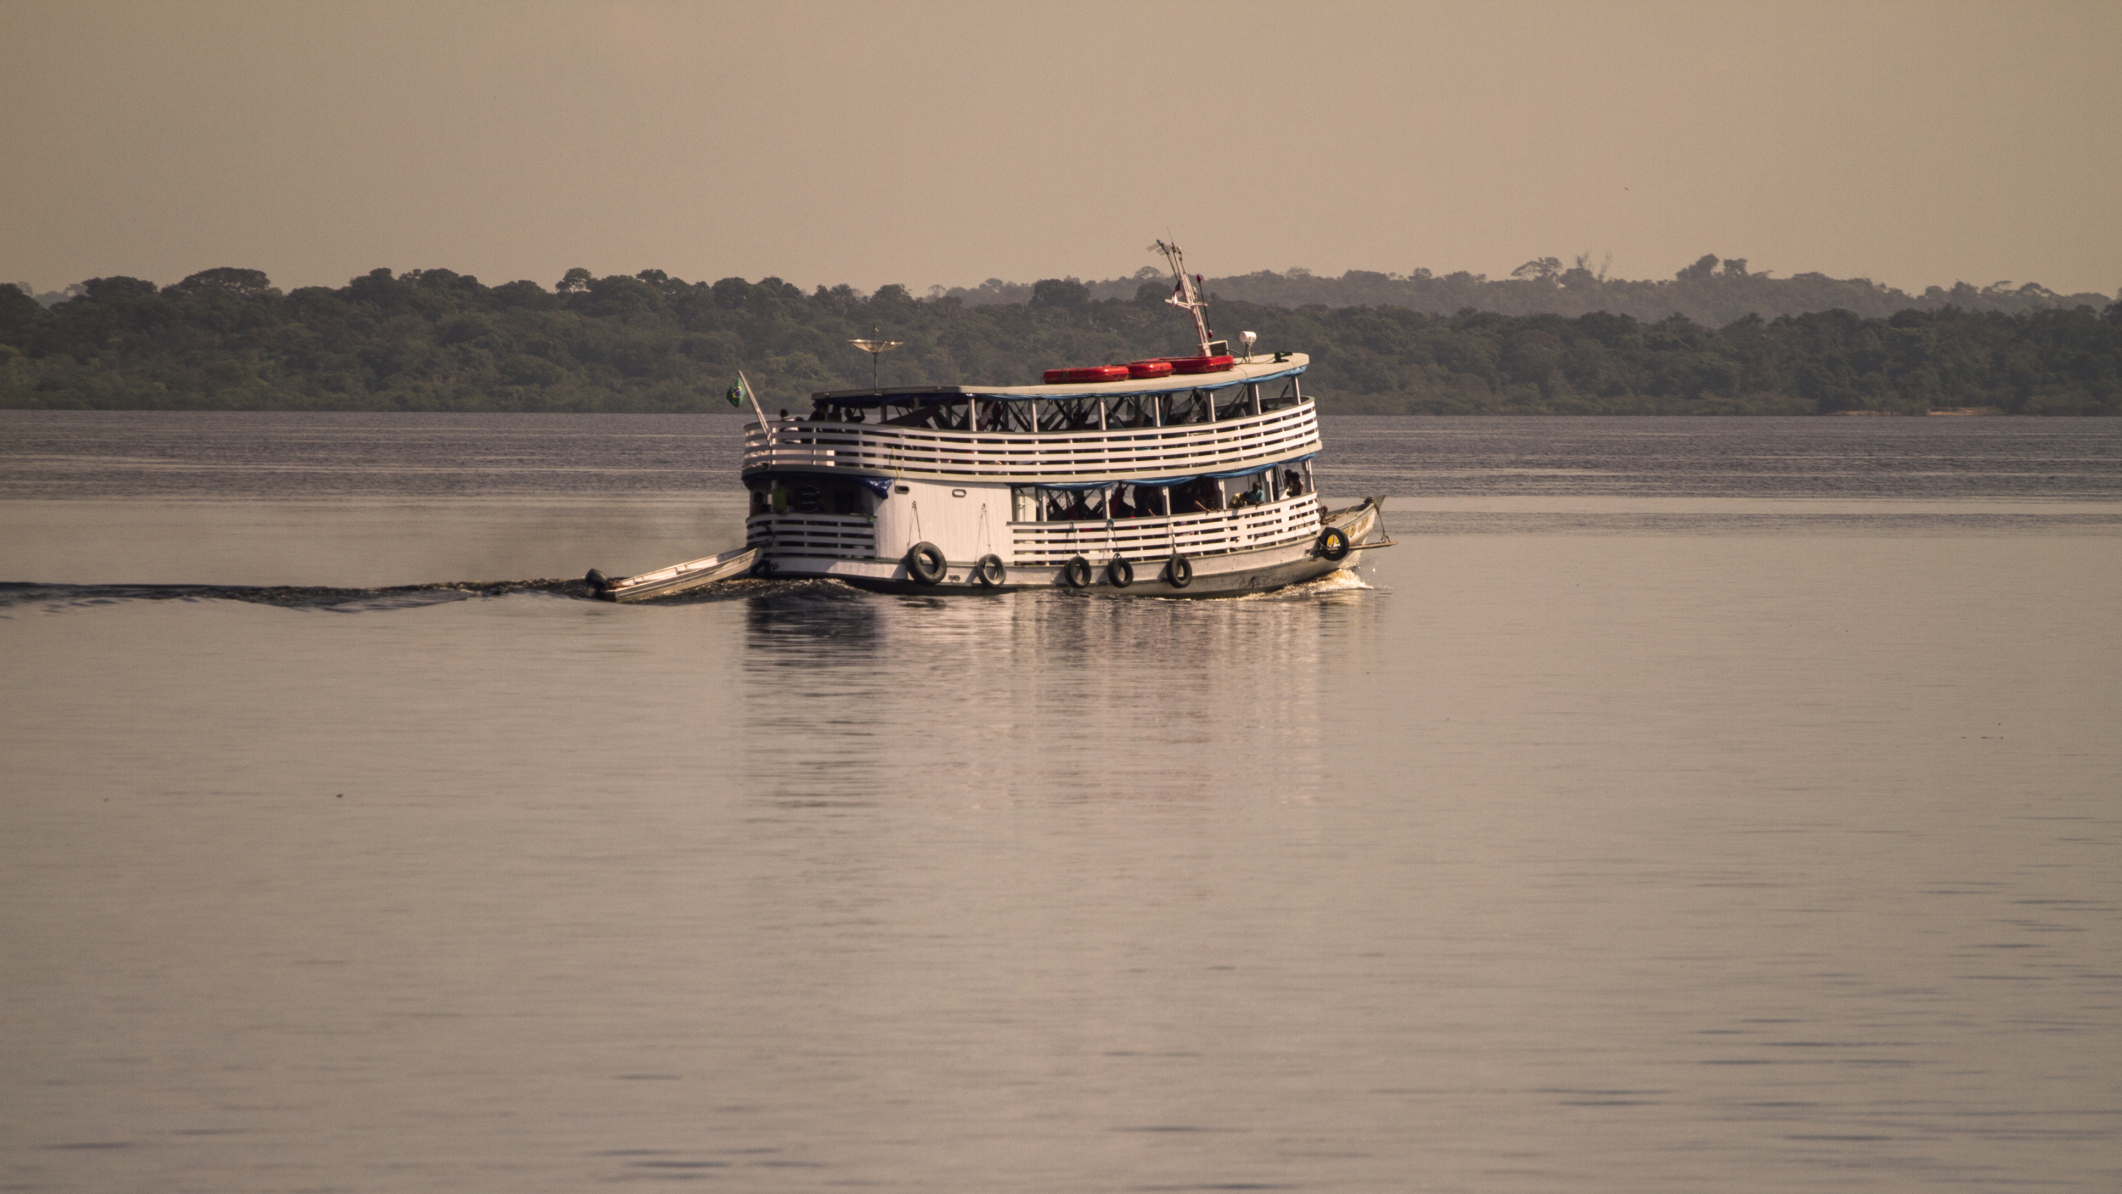 Boat of tourists sailing in Black River (Rio Negro). The Black River is the largest left tributary of the Amazon and the largest blackwater river in the world. (Brazil) By: Miguel Pereira